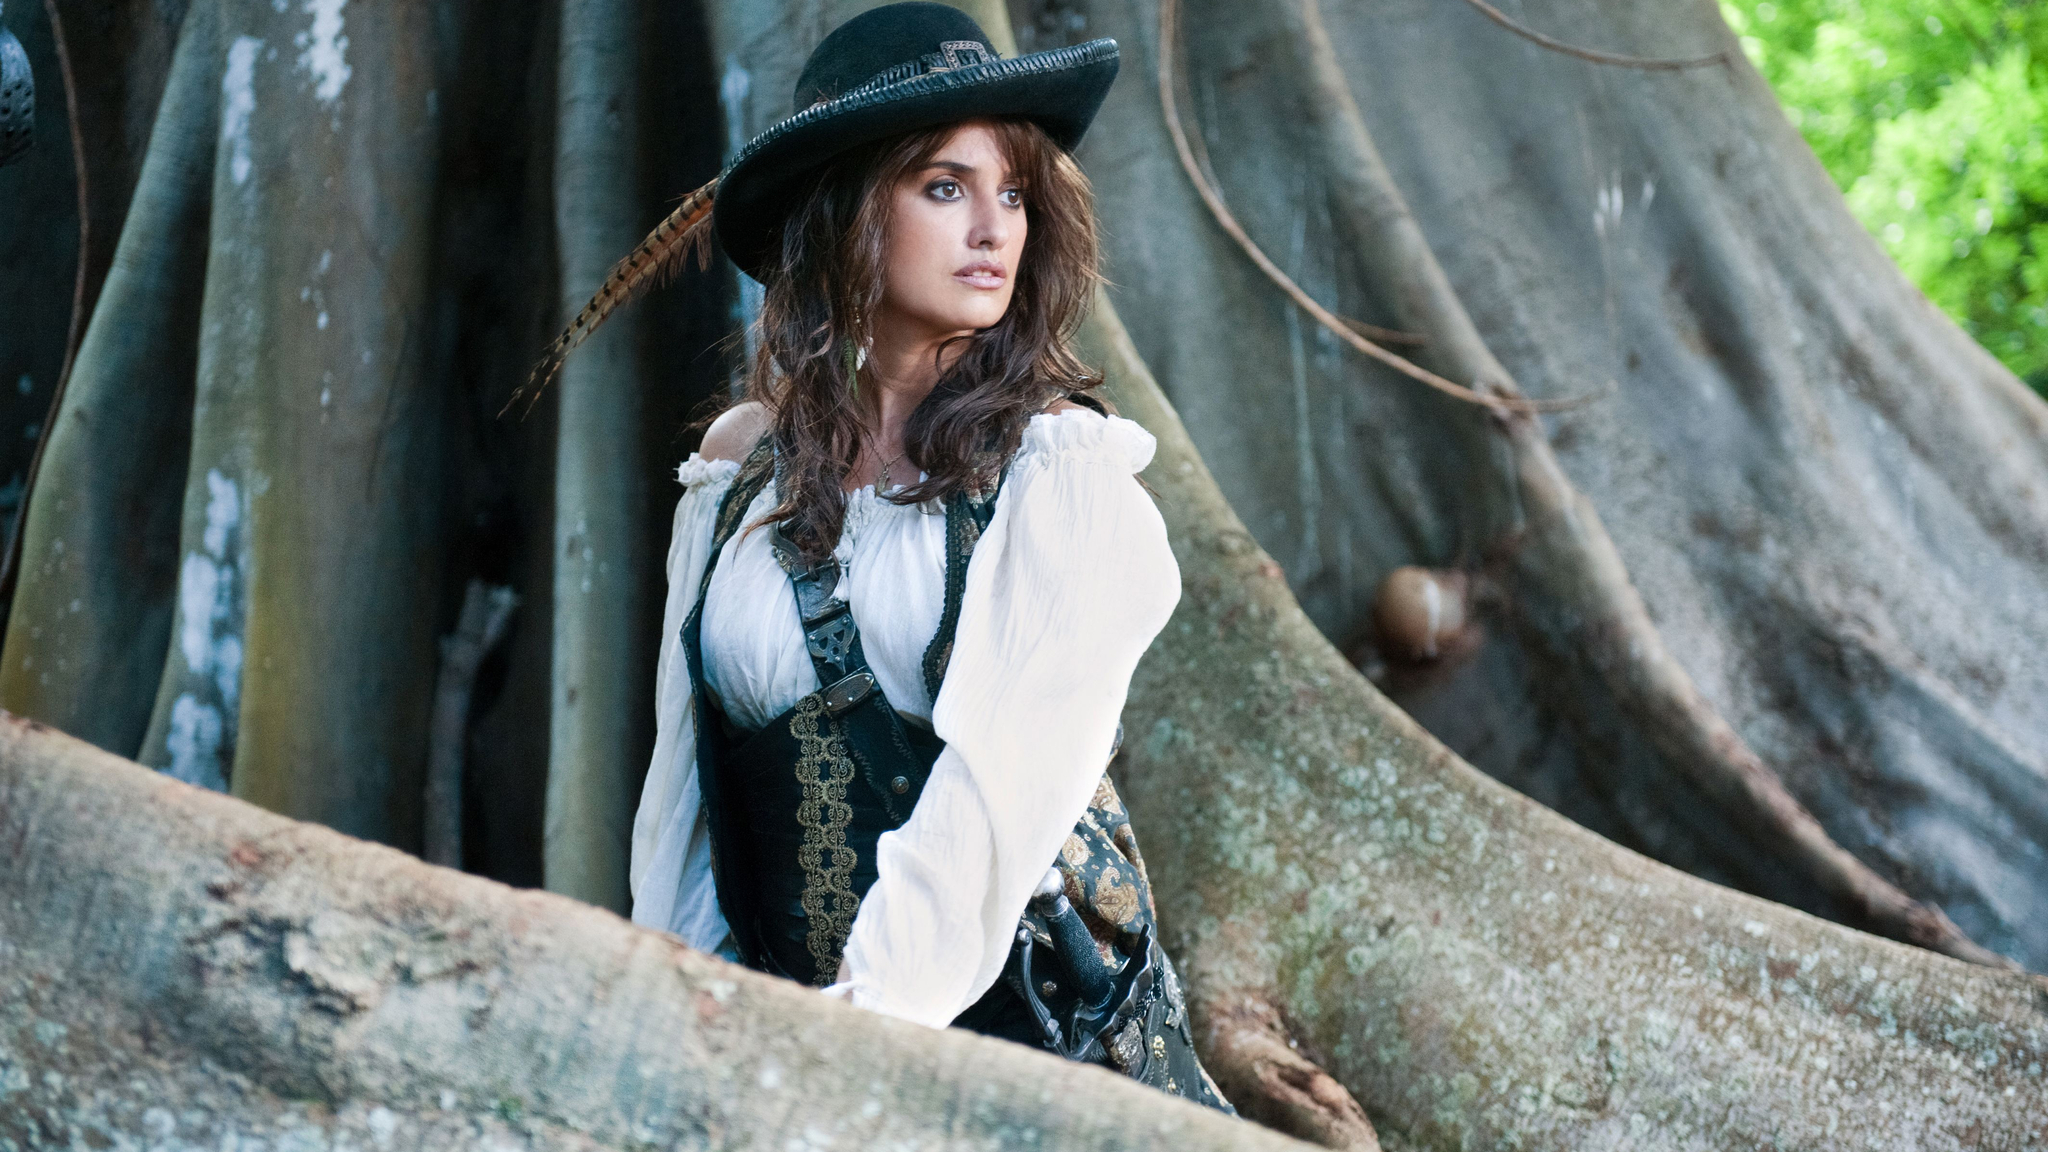 Cute Barbie Wallpapers 240x320 2048x1152 Penelope Cruz In Pirates Of The Caribbean